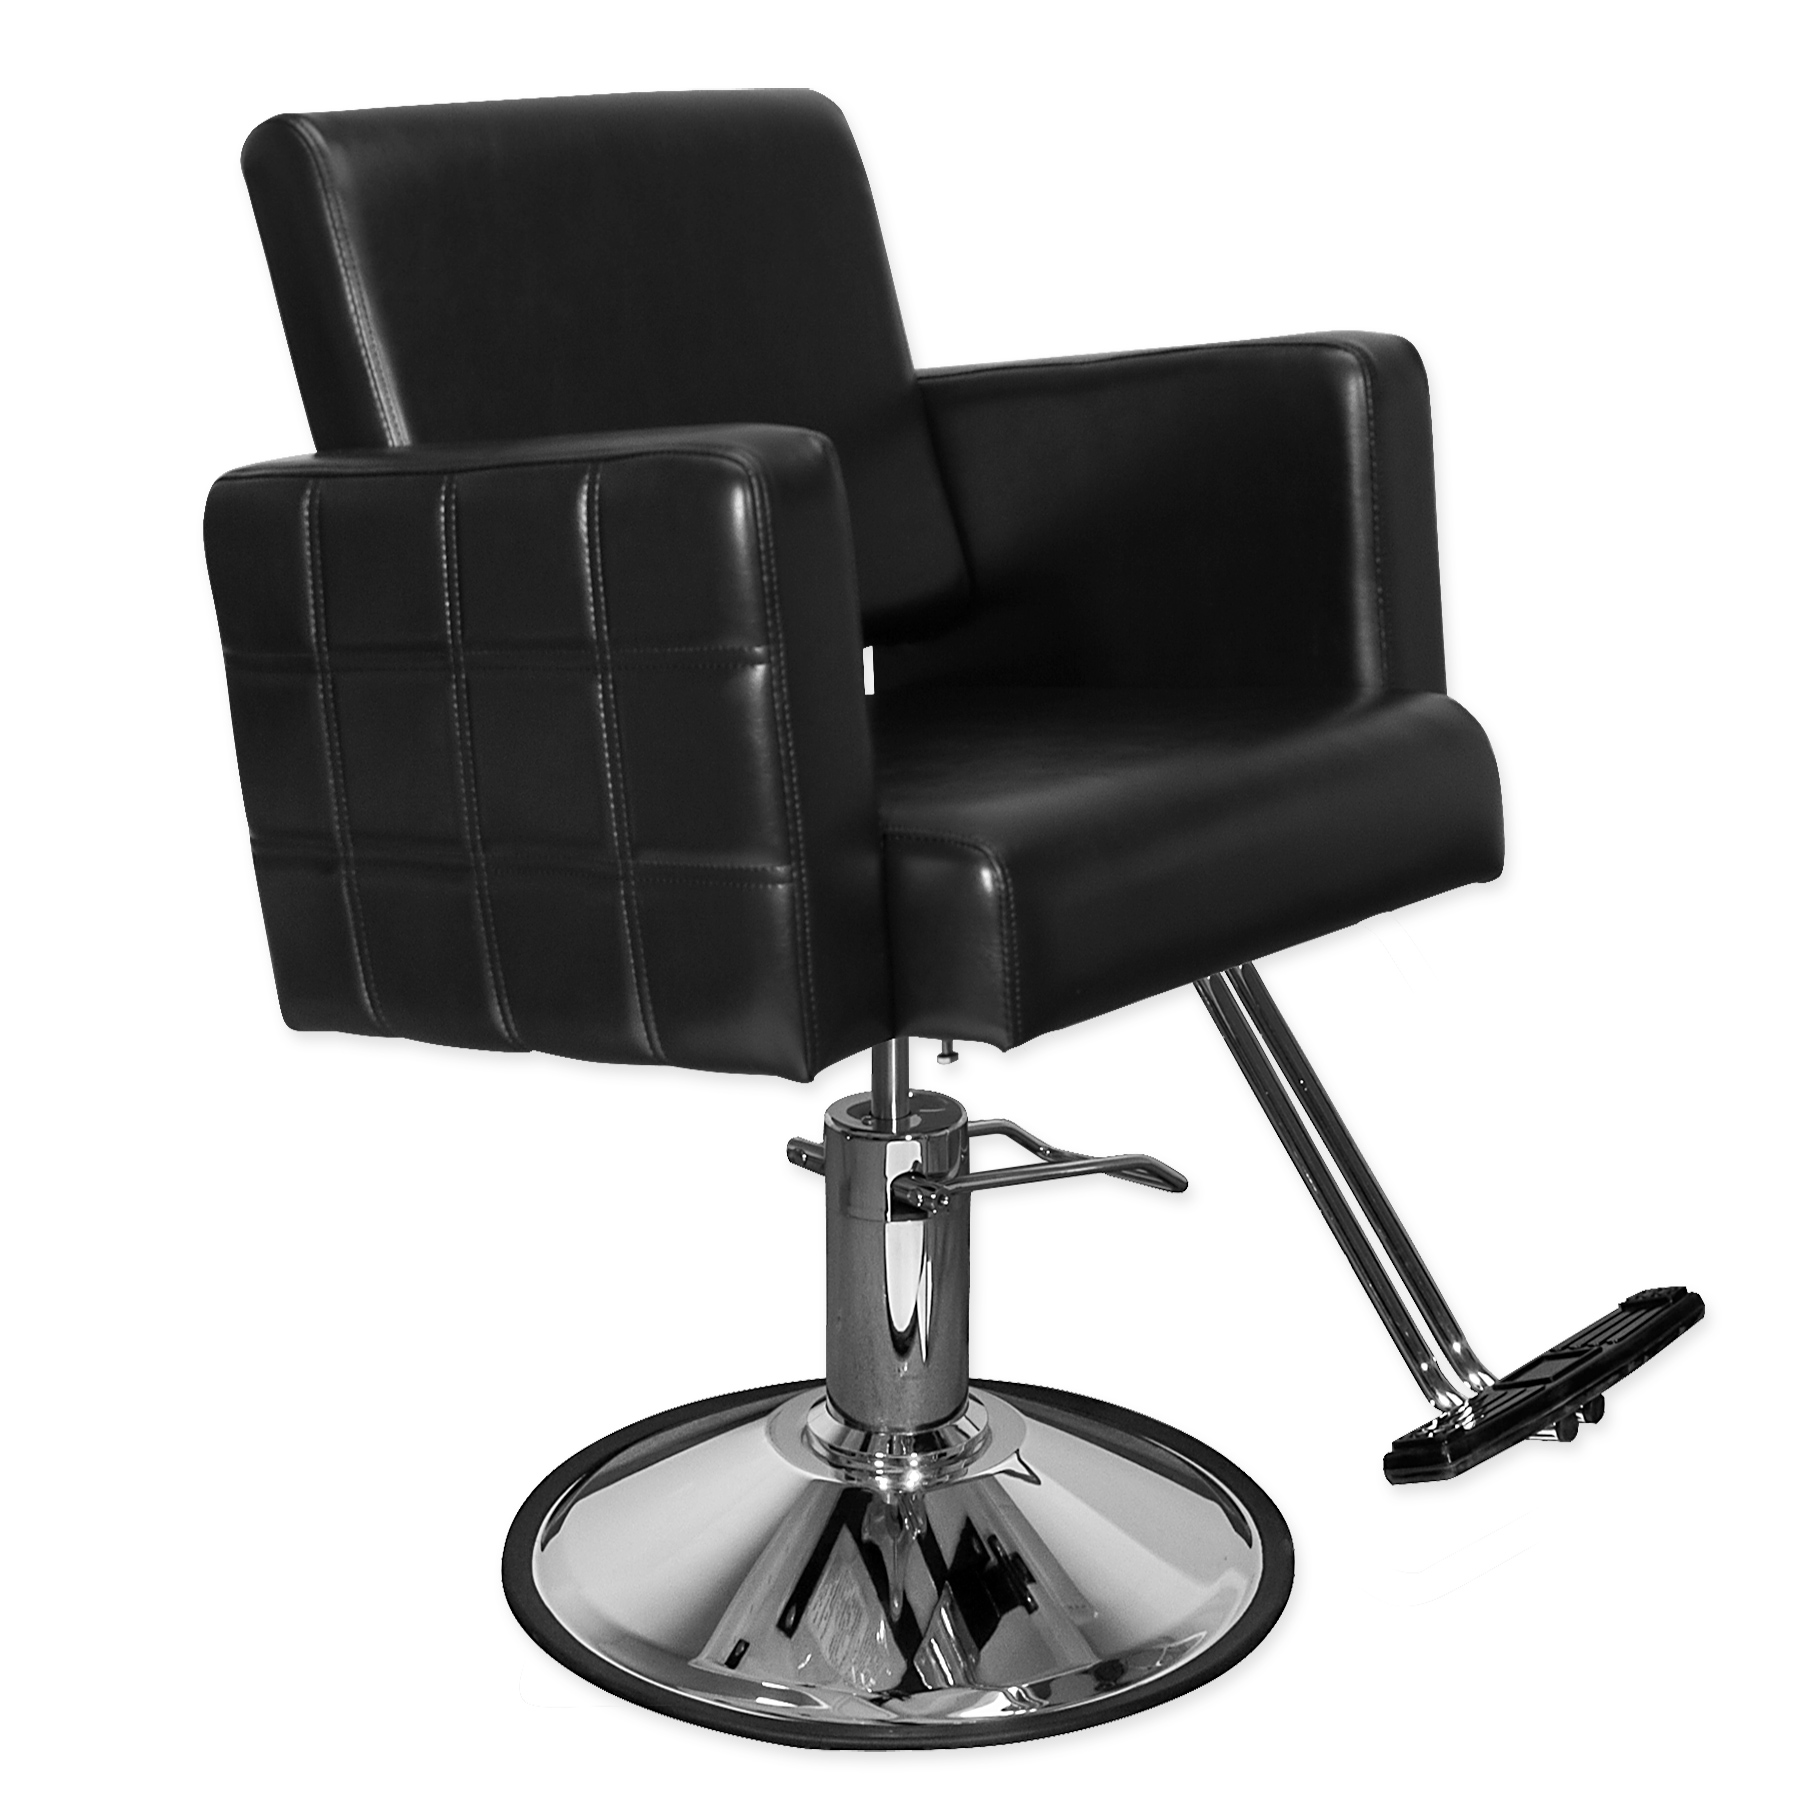 Havana Stylist Chair Quilted Black alternative product image 6